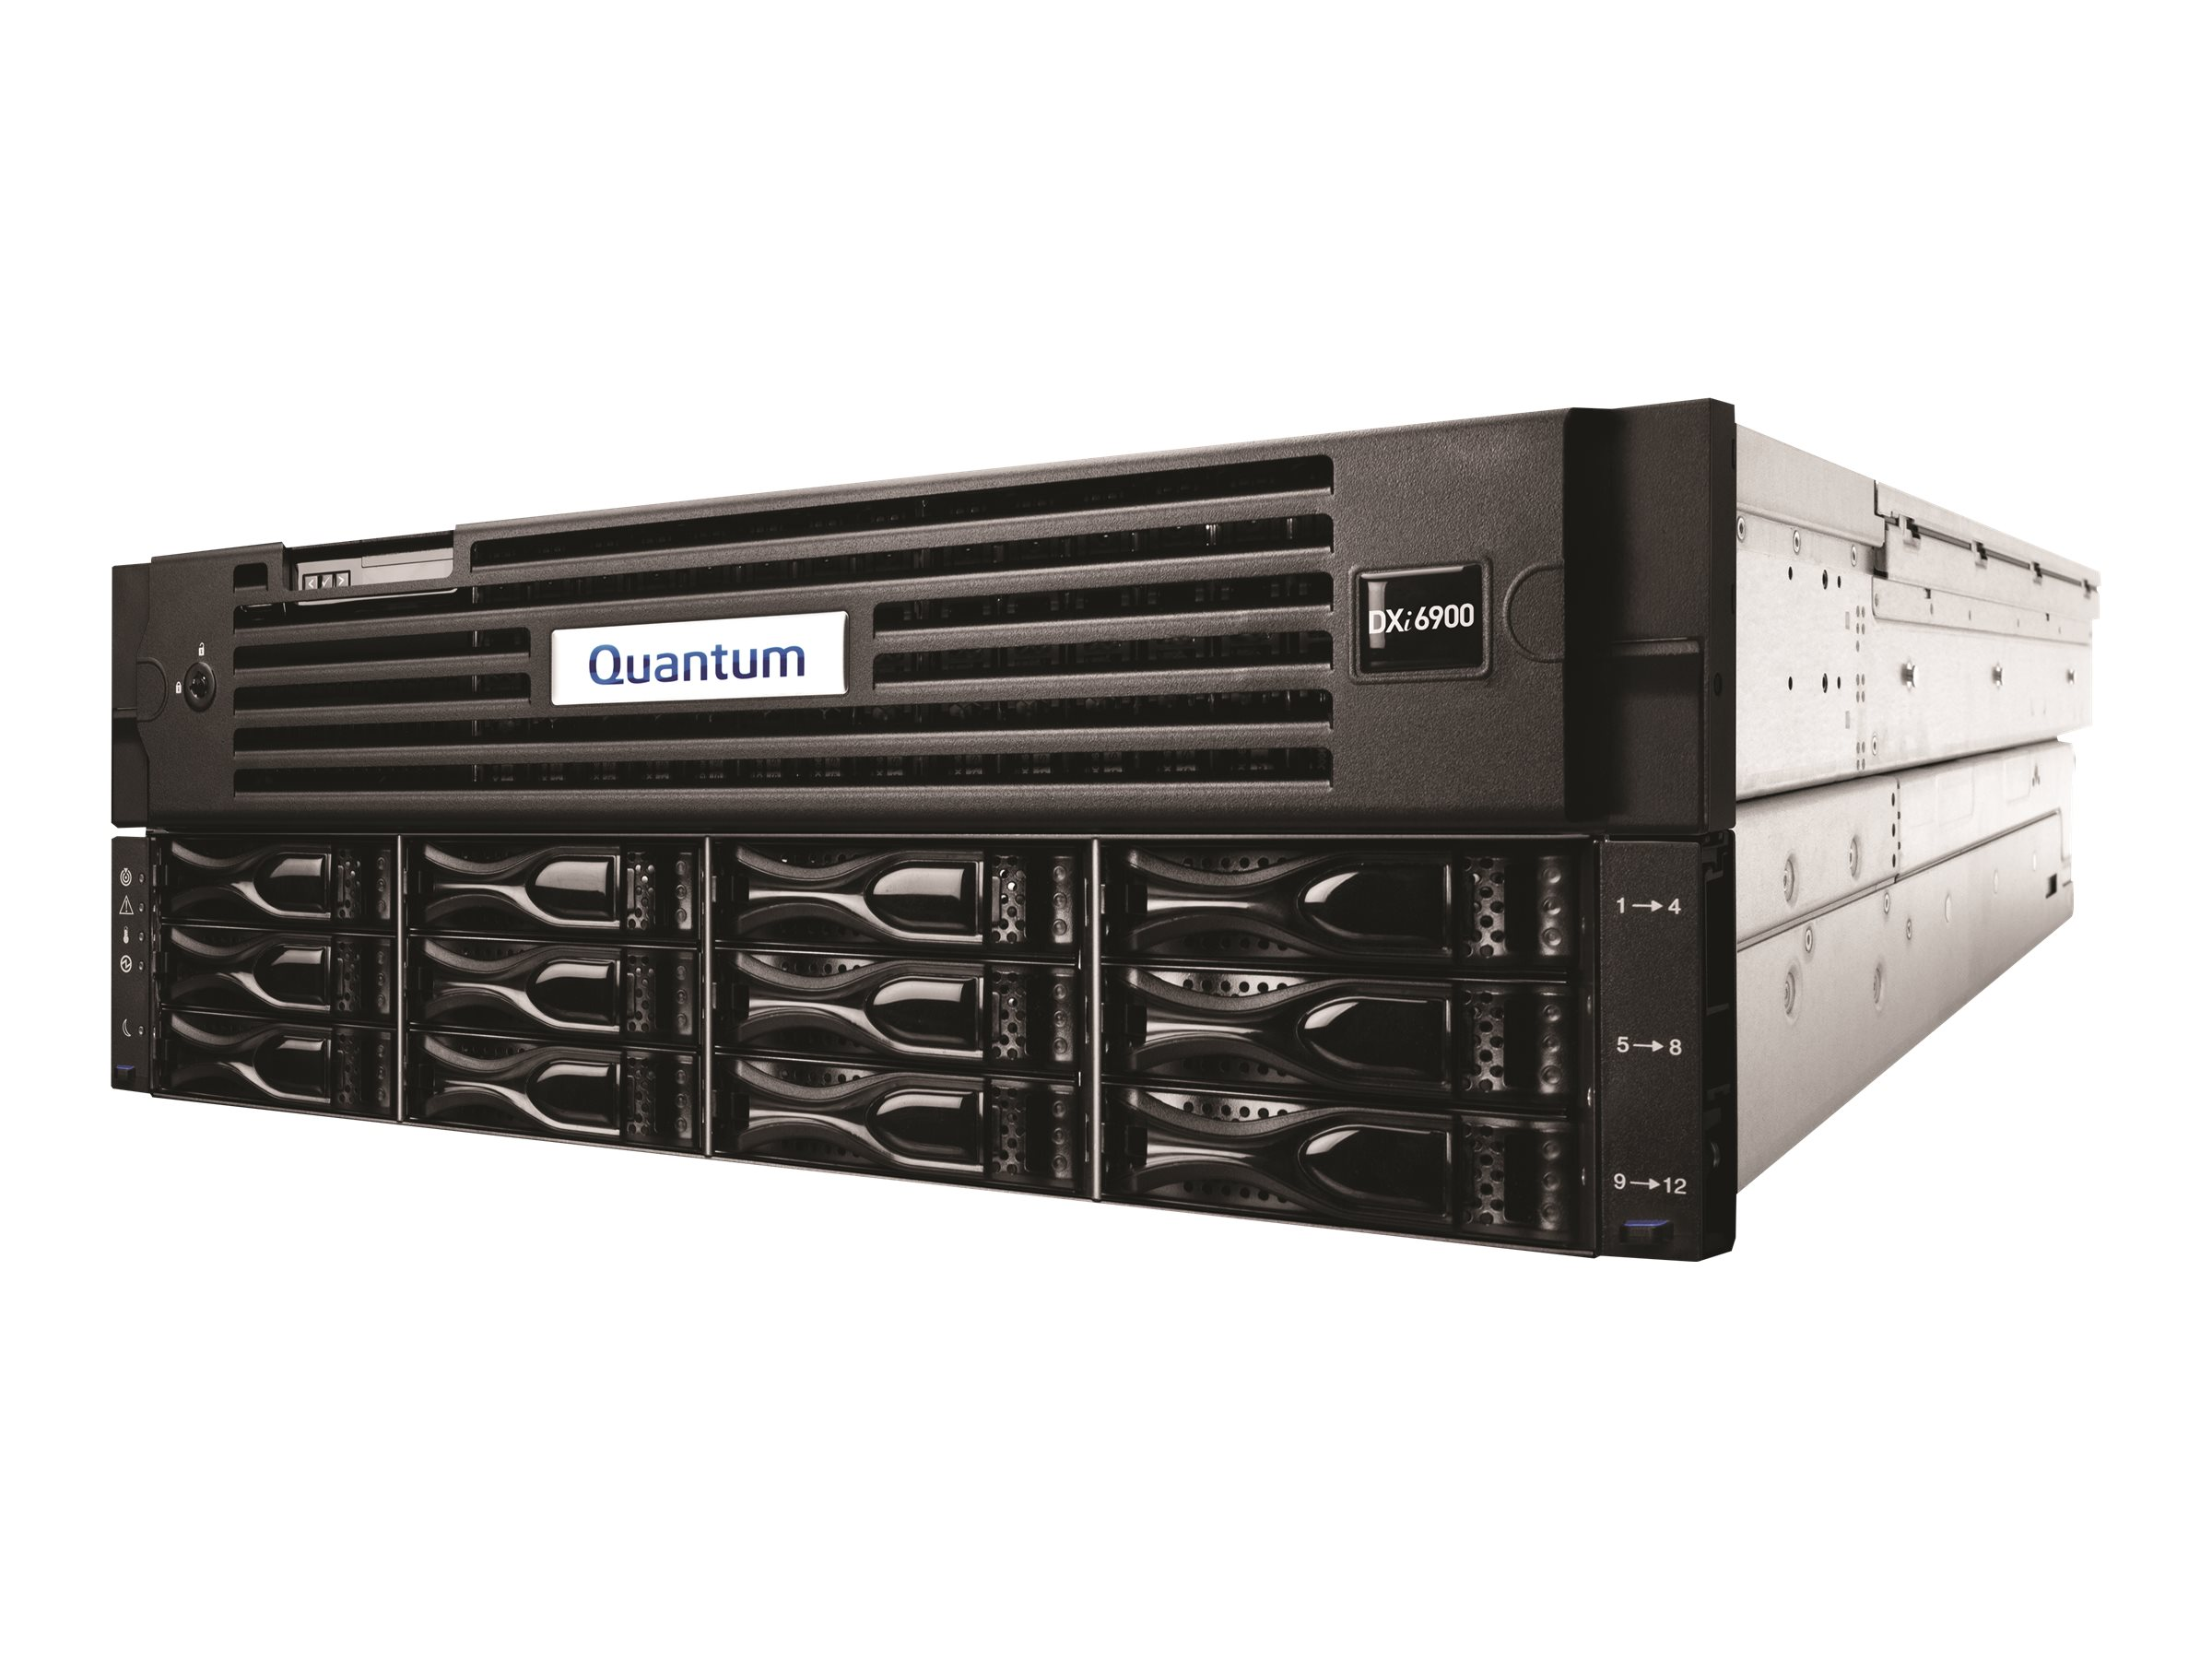 Quantum 17TB DXI6902 Disk Deduplication Backup Appliance, DDY69-CR02-017C